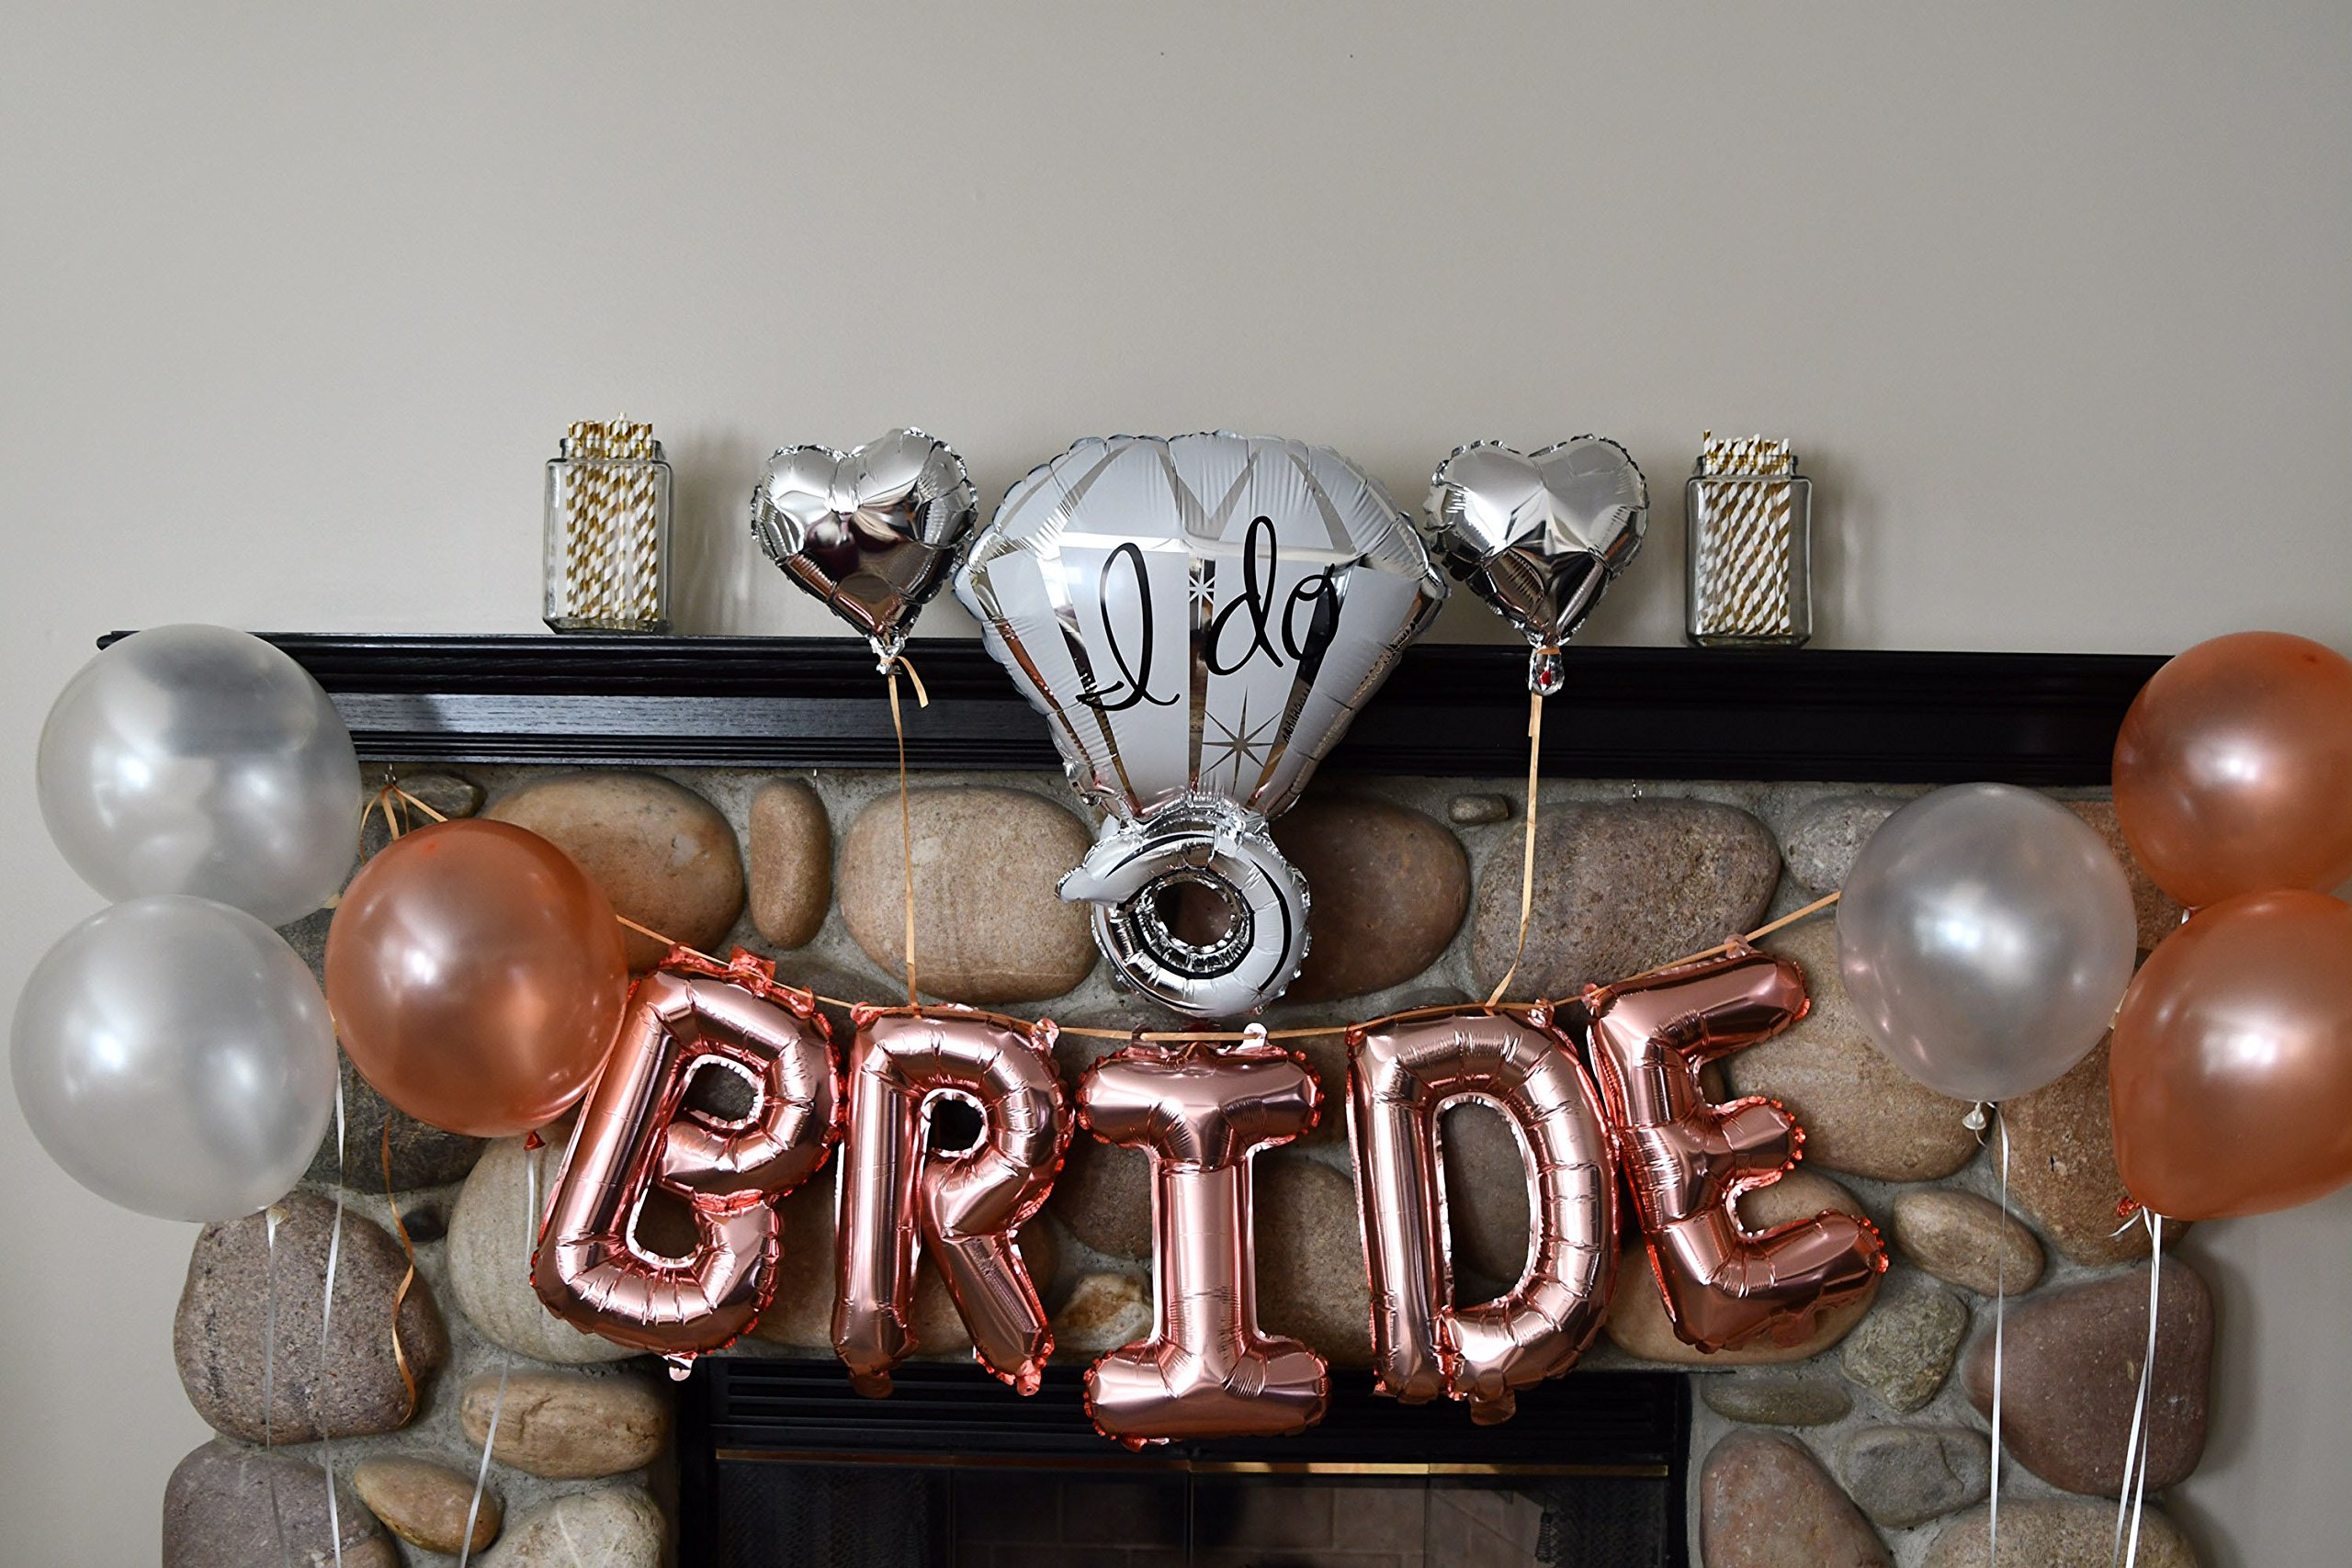 Bachelorette Party Decorations Pack - Rose Gold Party Supply Kit with Rose Gold, White Pearl and Silver Heart Balloons + Rose Gold Straws + The Bride Sash + Bride Foil Banner and Diamond Ring Balloon by Party Simple (Image #2)